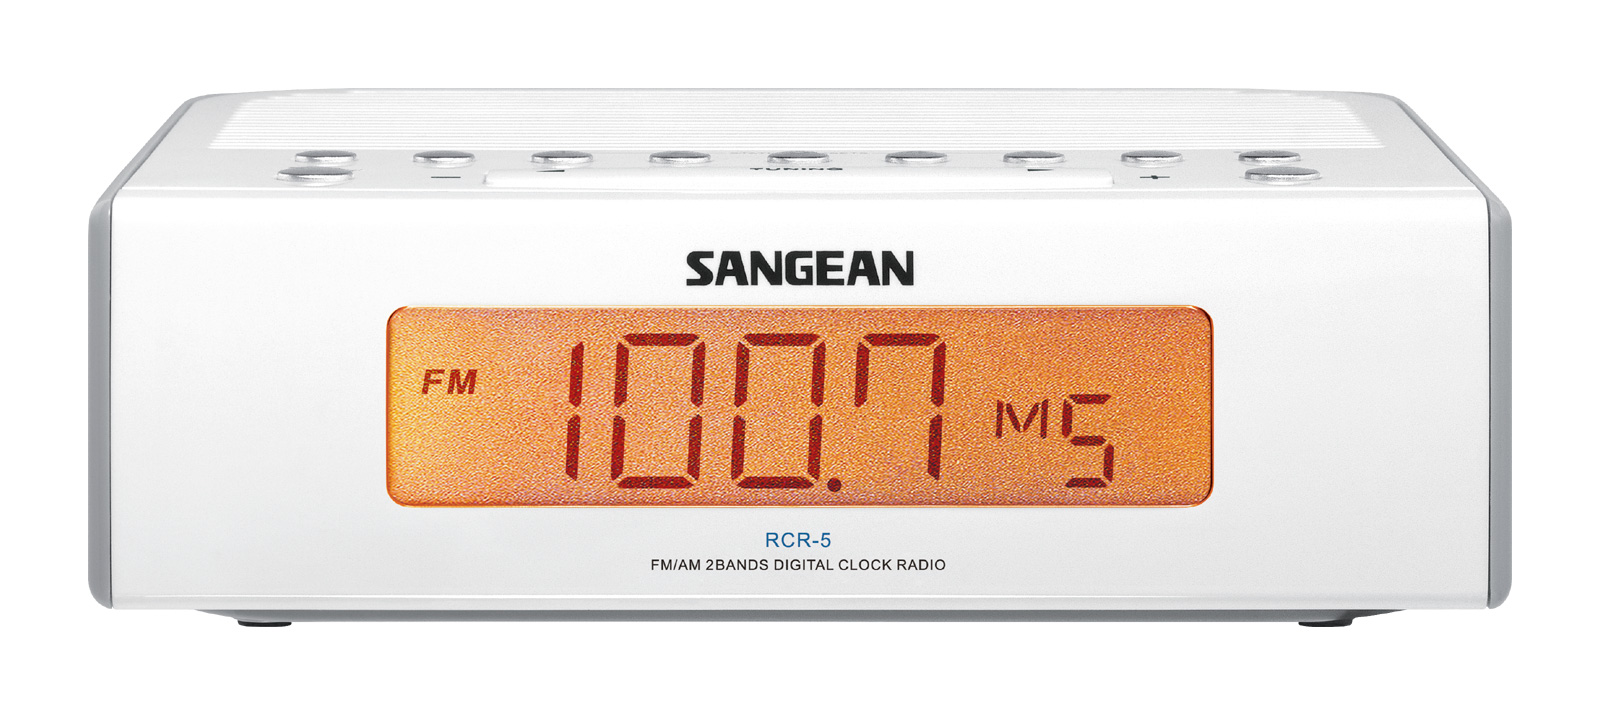 Sangean Compact AM FM Dual Alarm Clock Radio with Large Easy to Read Backlit LED Display Plus 6ft Aux Cable to Connect... by Sangean